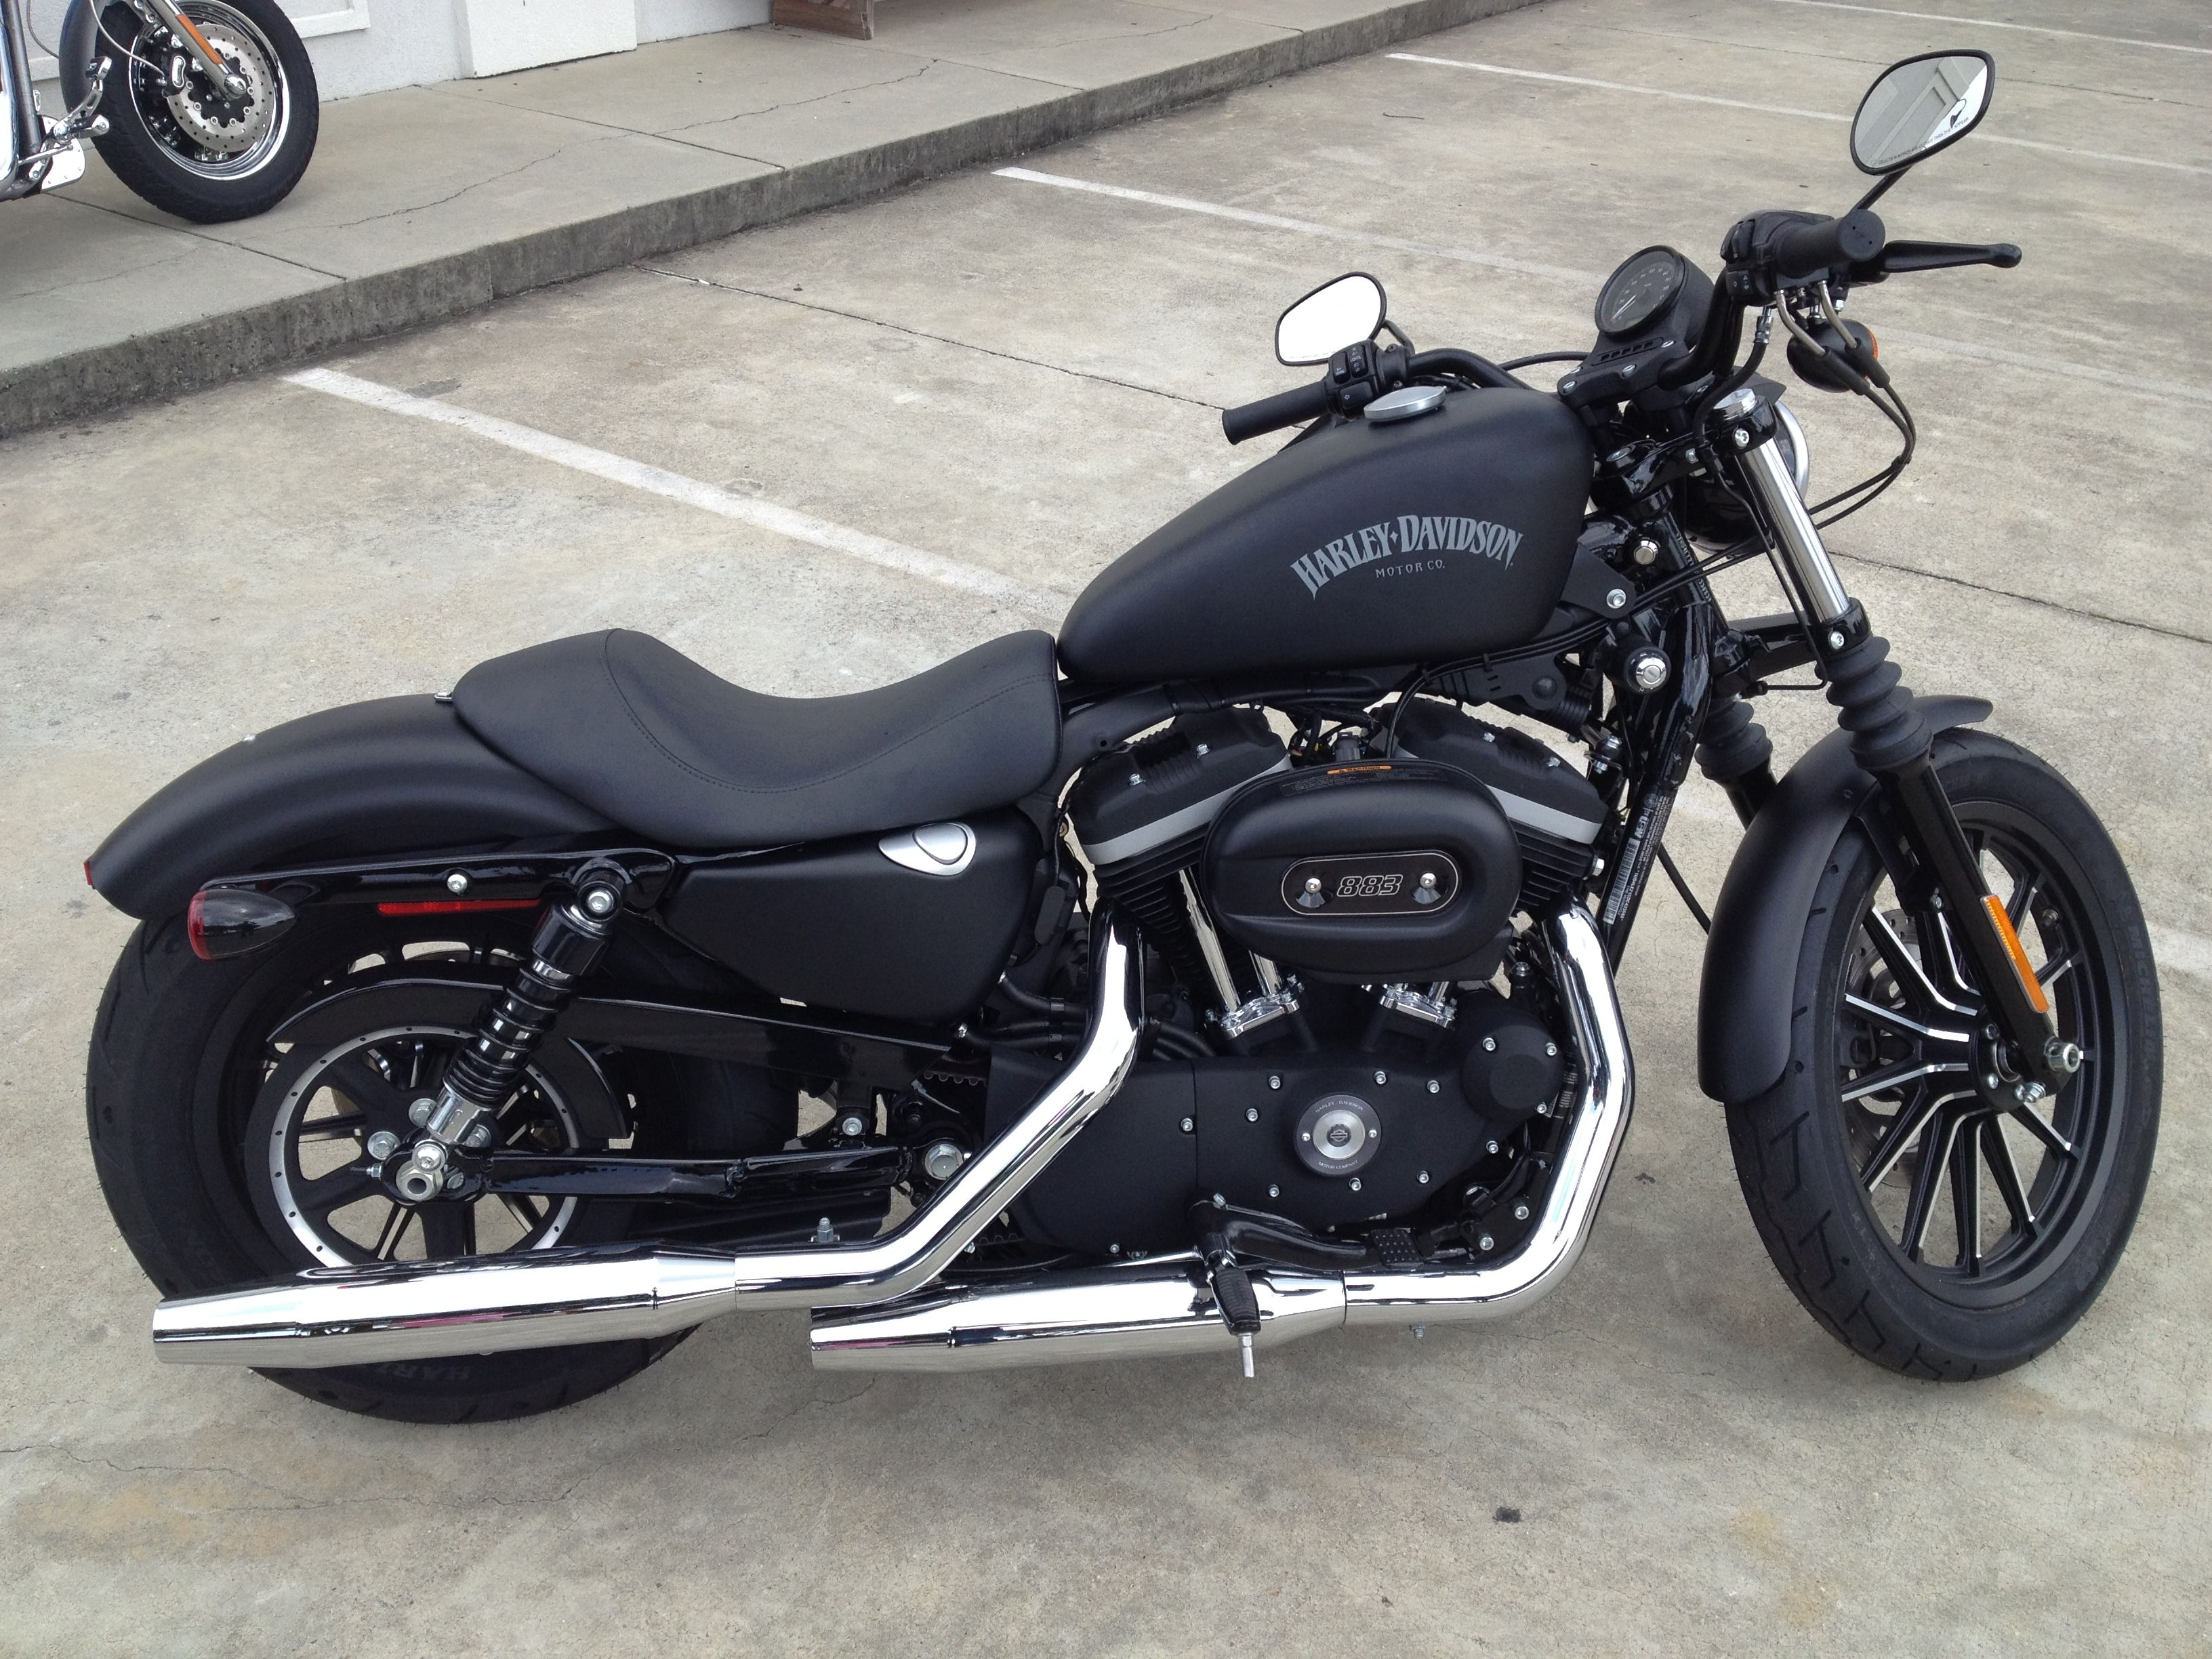 And one day this 2013 Harley Davidson sportster 883 will be mine as